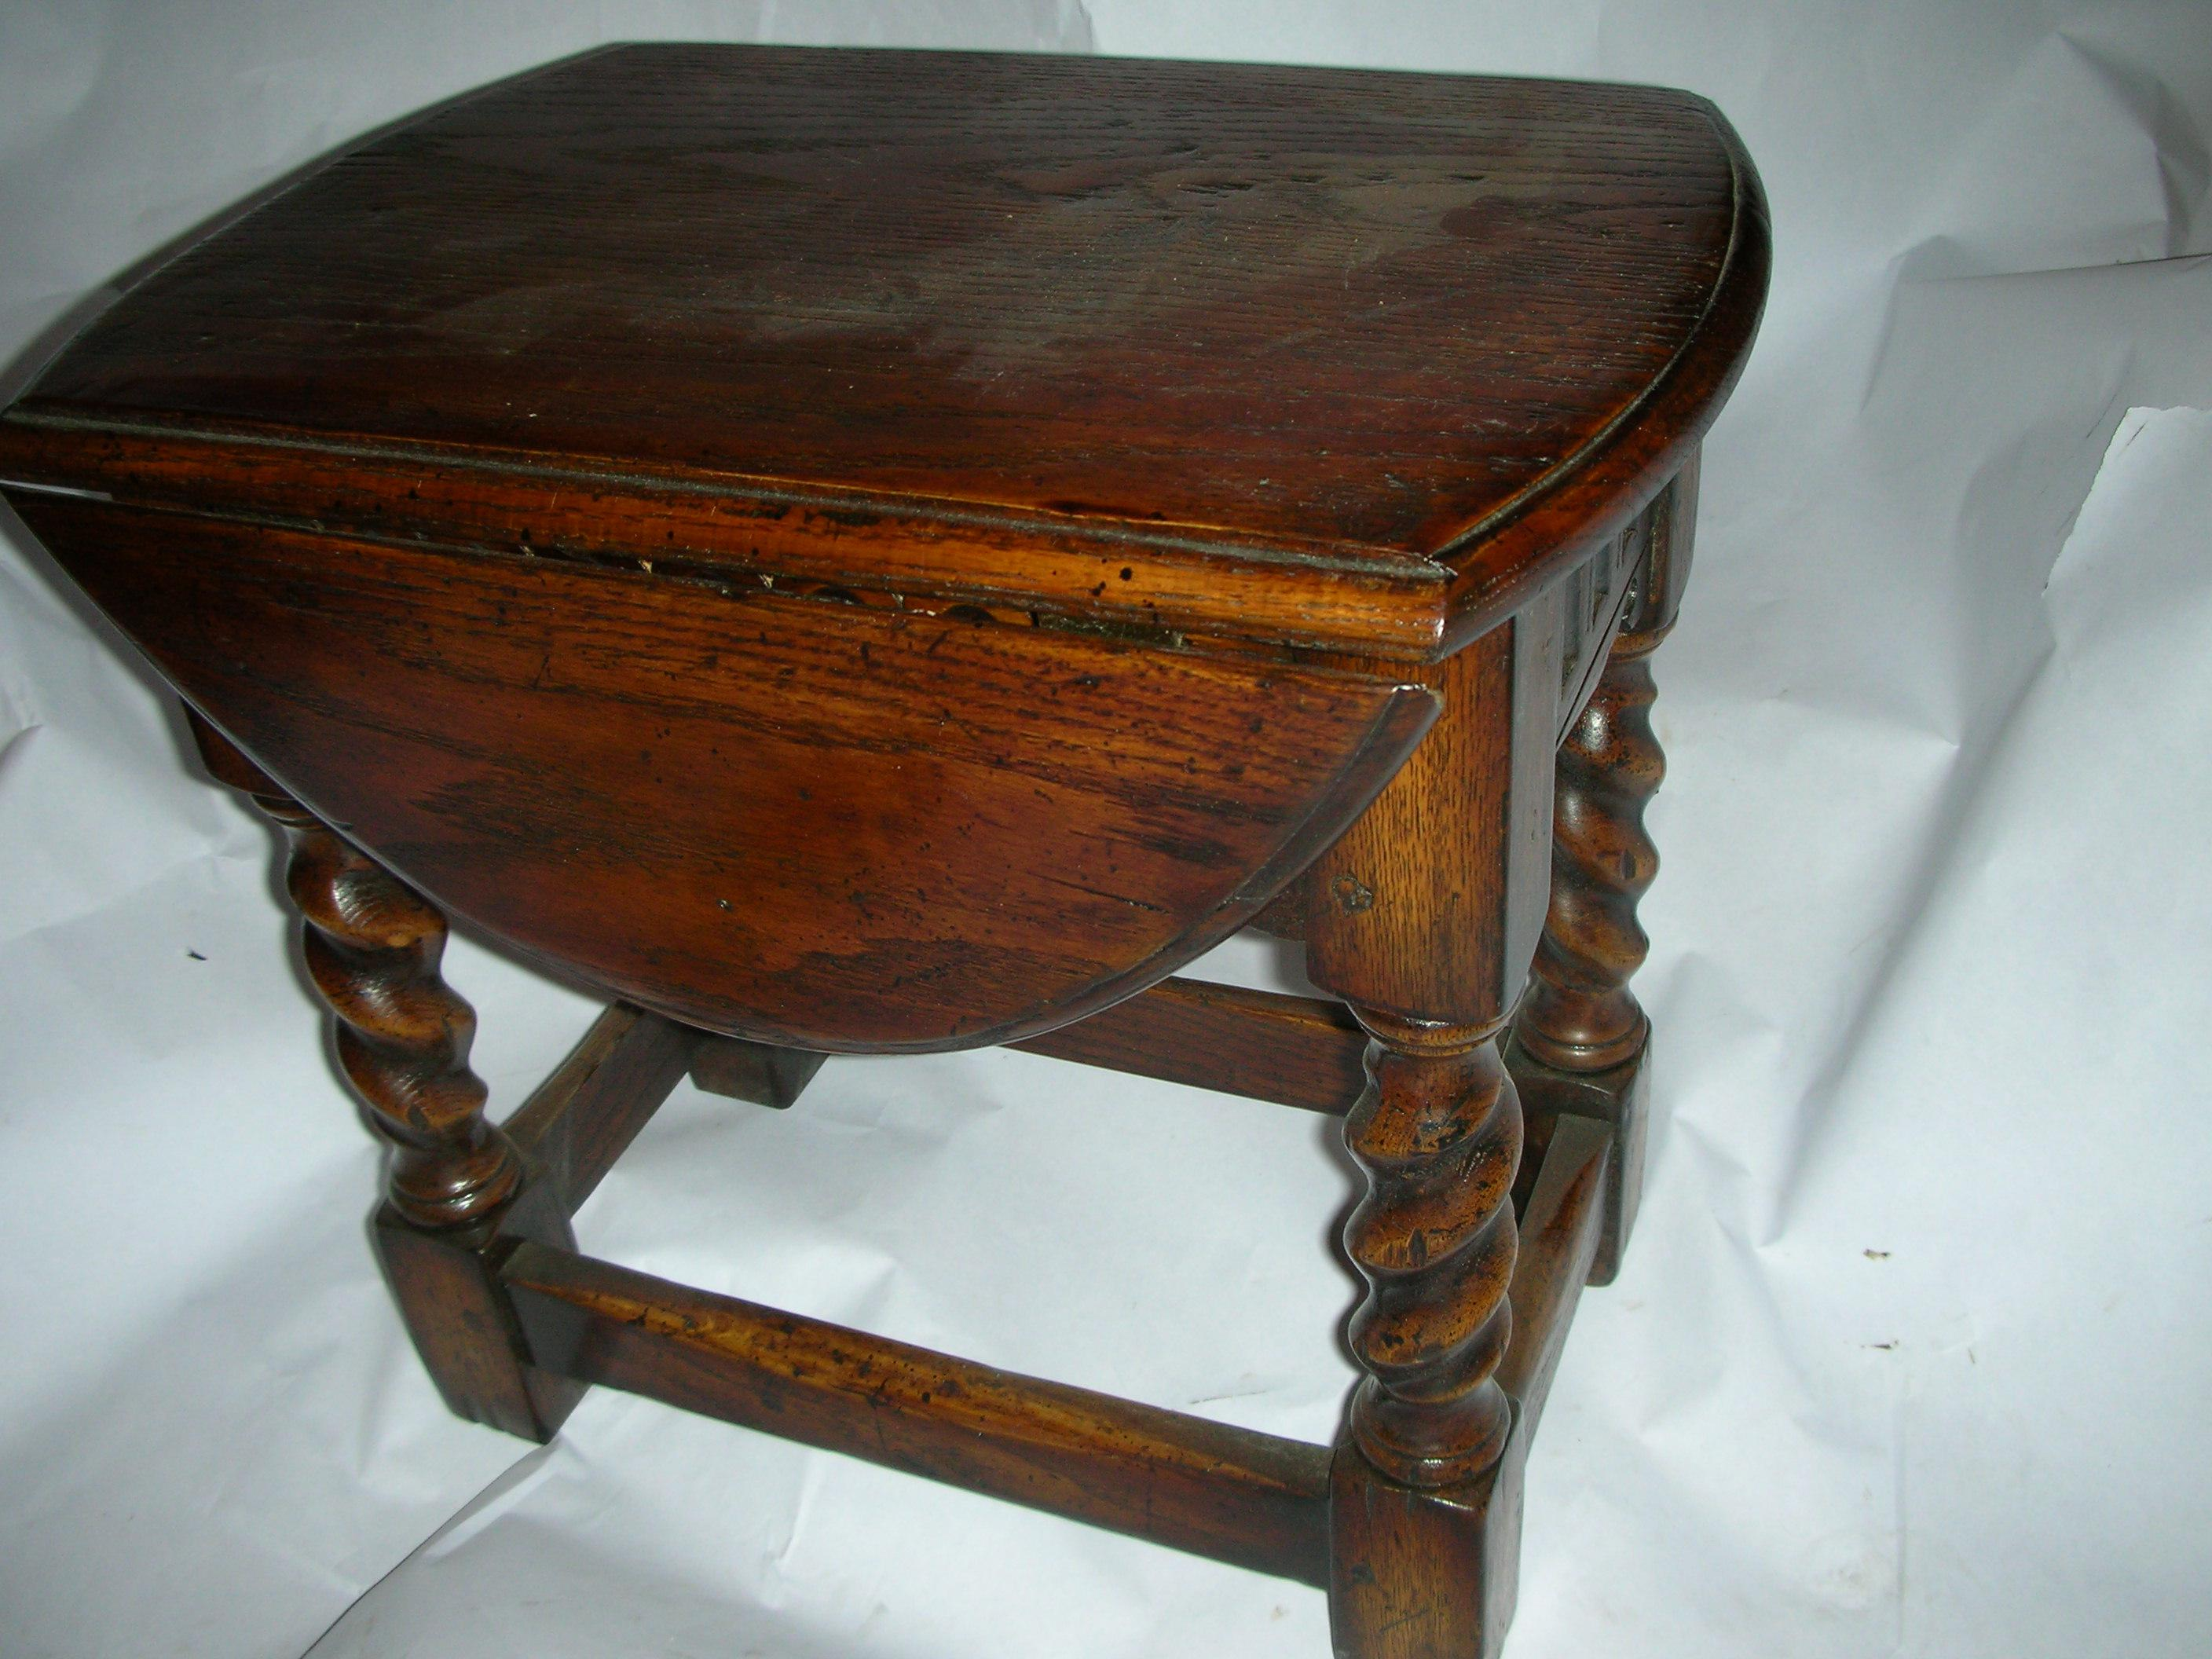 A Beautiful Small Oak Drop Leaf Side Table With Barley Twist Legs, A Great  Useful